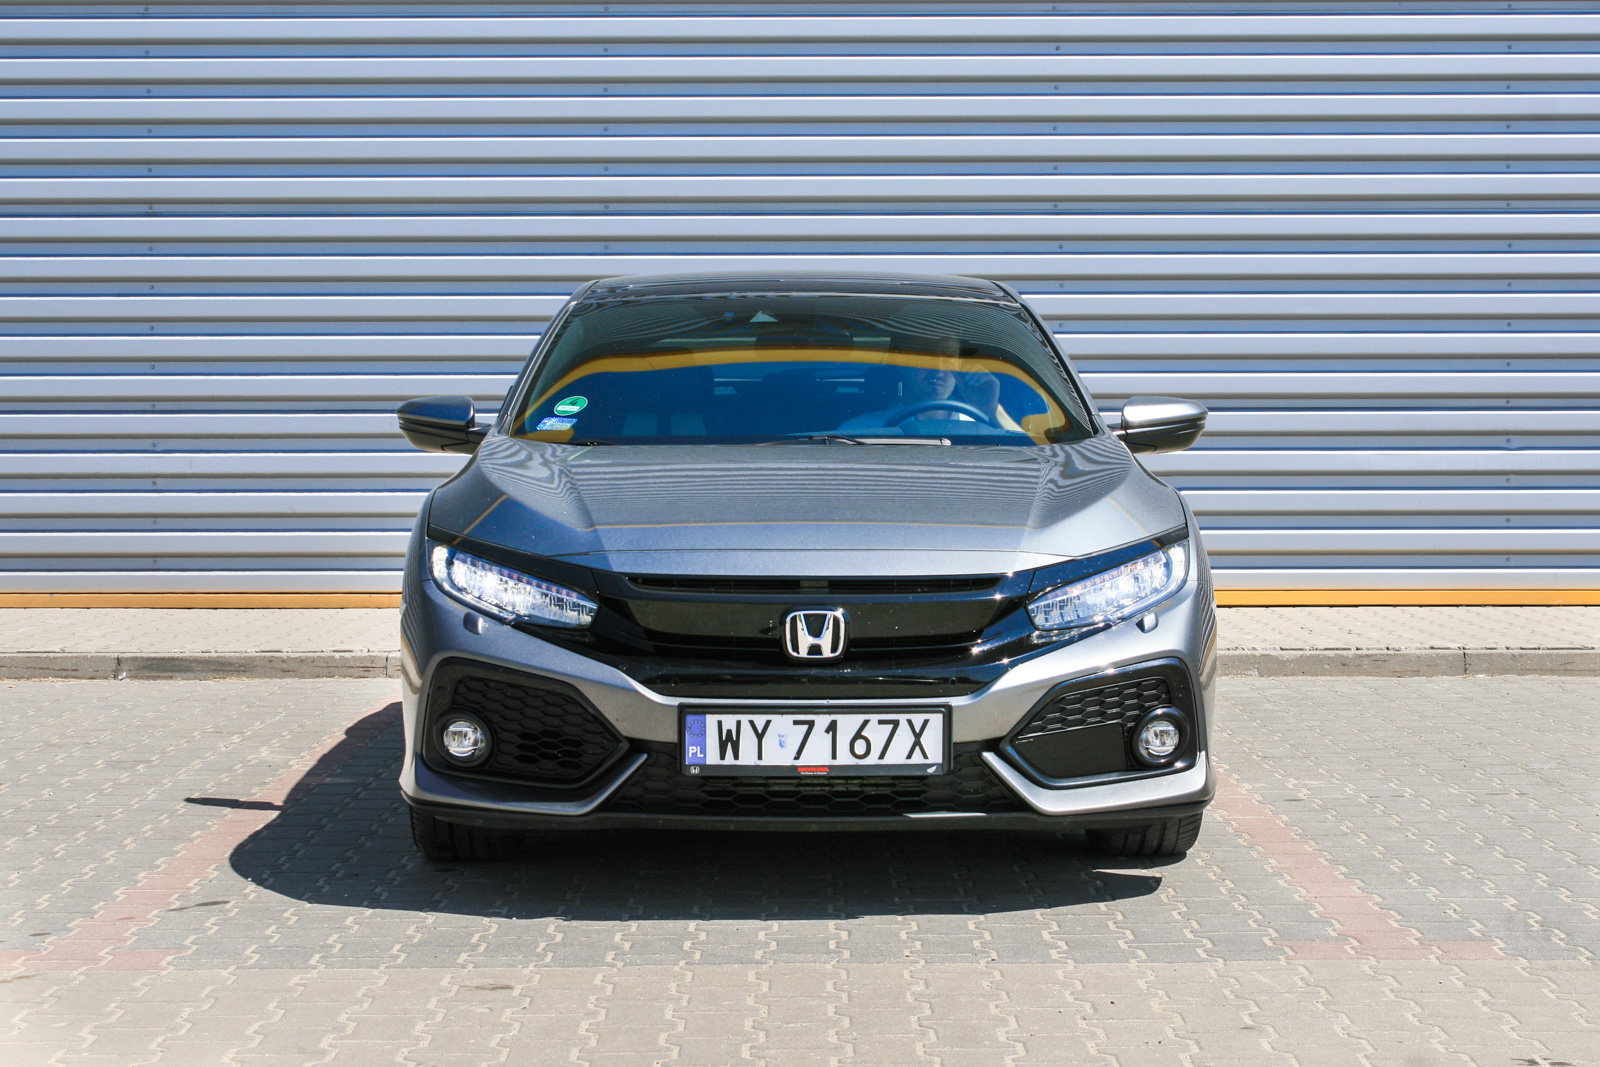 Honda Civic 1.0 turbo